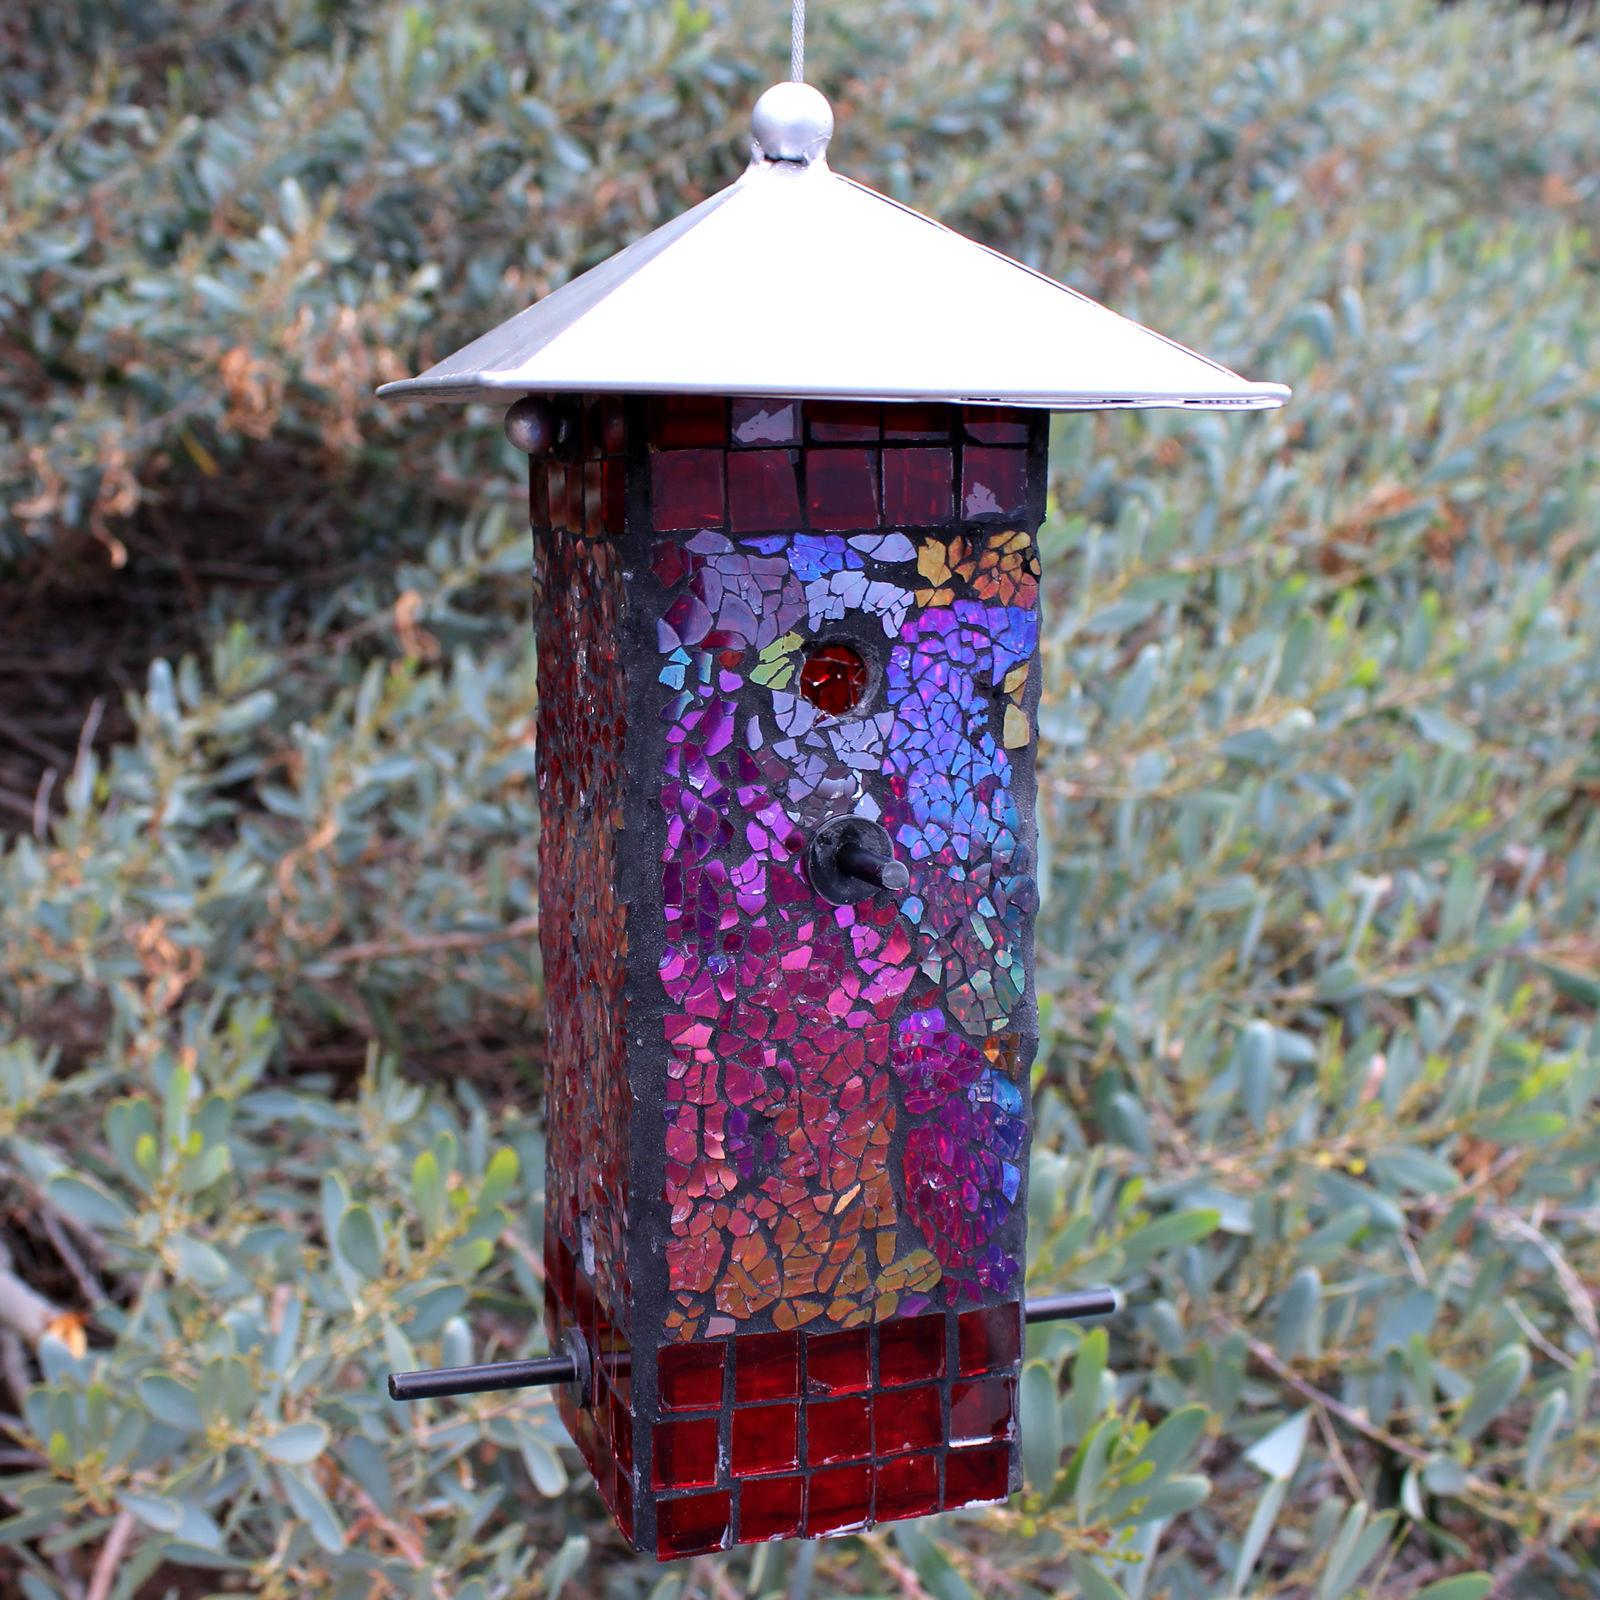 Wild Bird Seed Feeder Mosaic Stained Mirrored Glass Lift-off